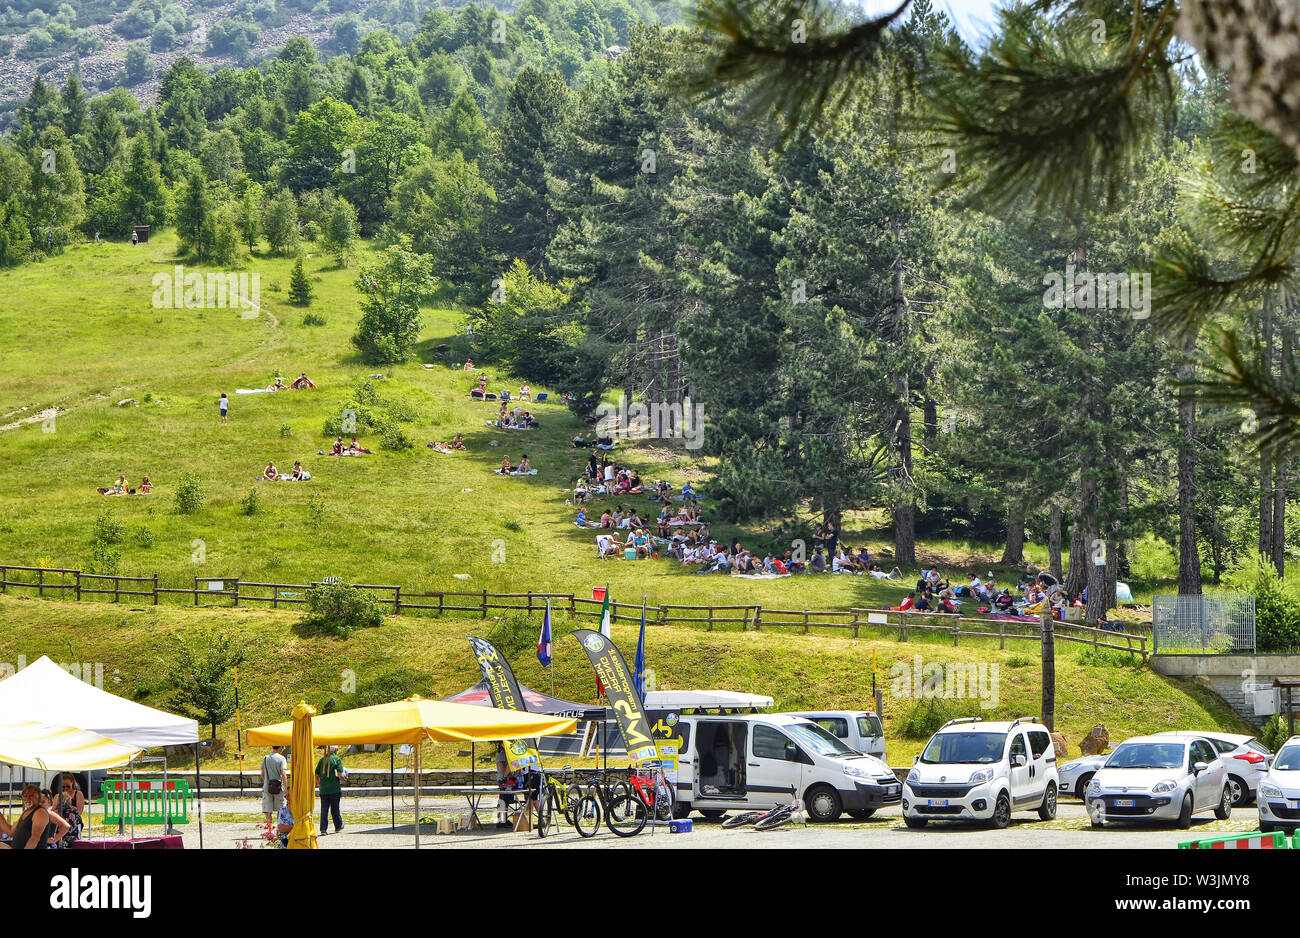 Colle del Lys, Piedmont, Italy. July 2019. People looking for refreshment take advantage of the slope of the mountain with a large green lawn to picni - Stock Image